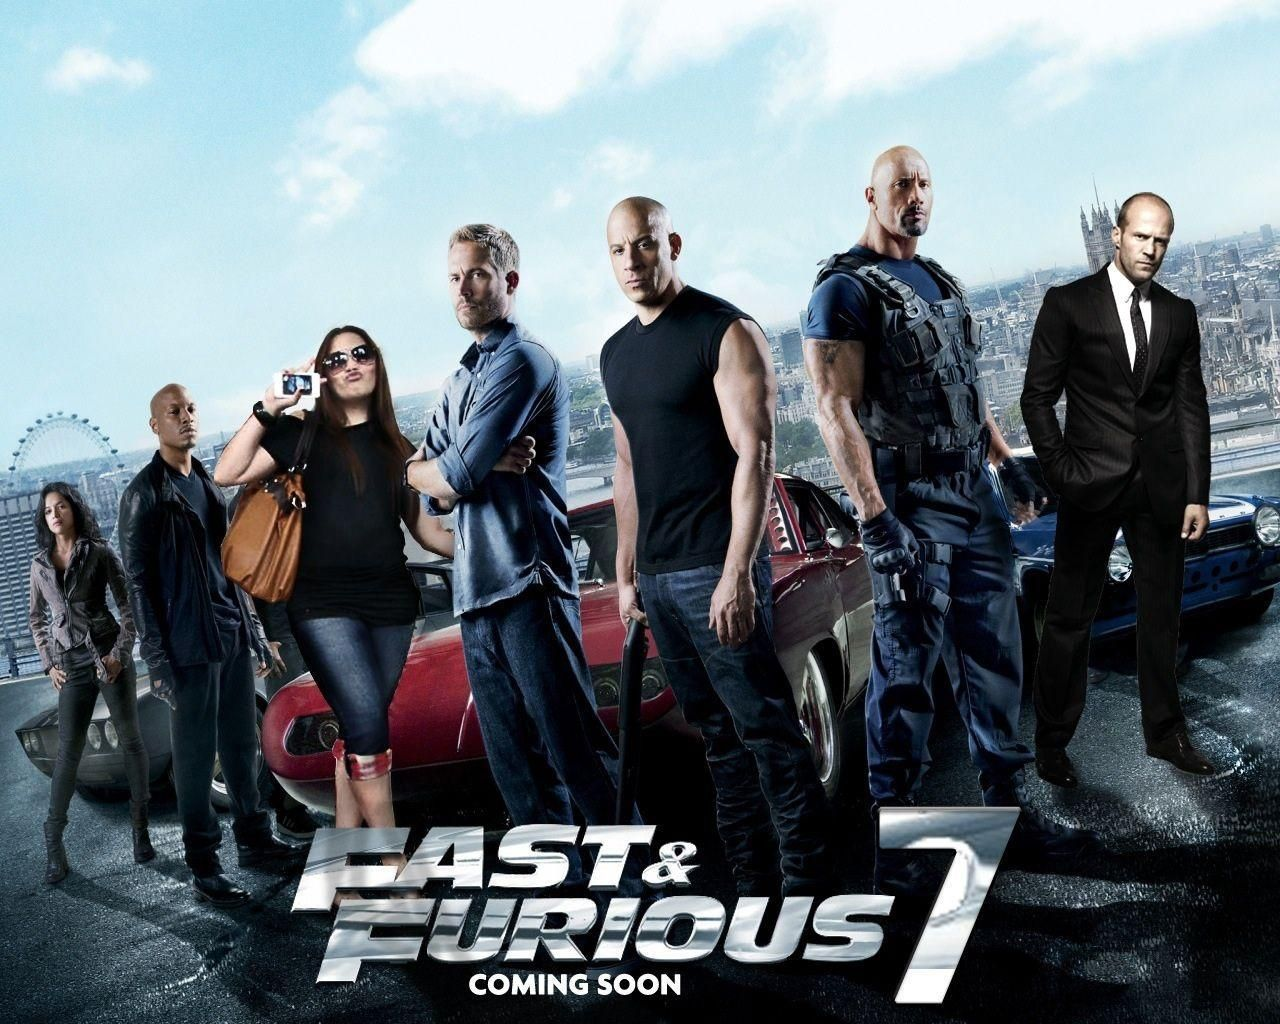 Fast And Furious 7 Full Hd Free Full HD Movies App for mobile Get It On  Your Device Just One Click On Lin… | Old bollywood movies, Hindi movies  online, Hindi movies